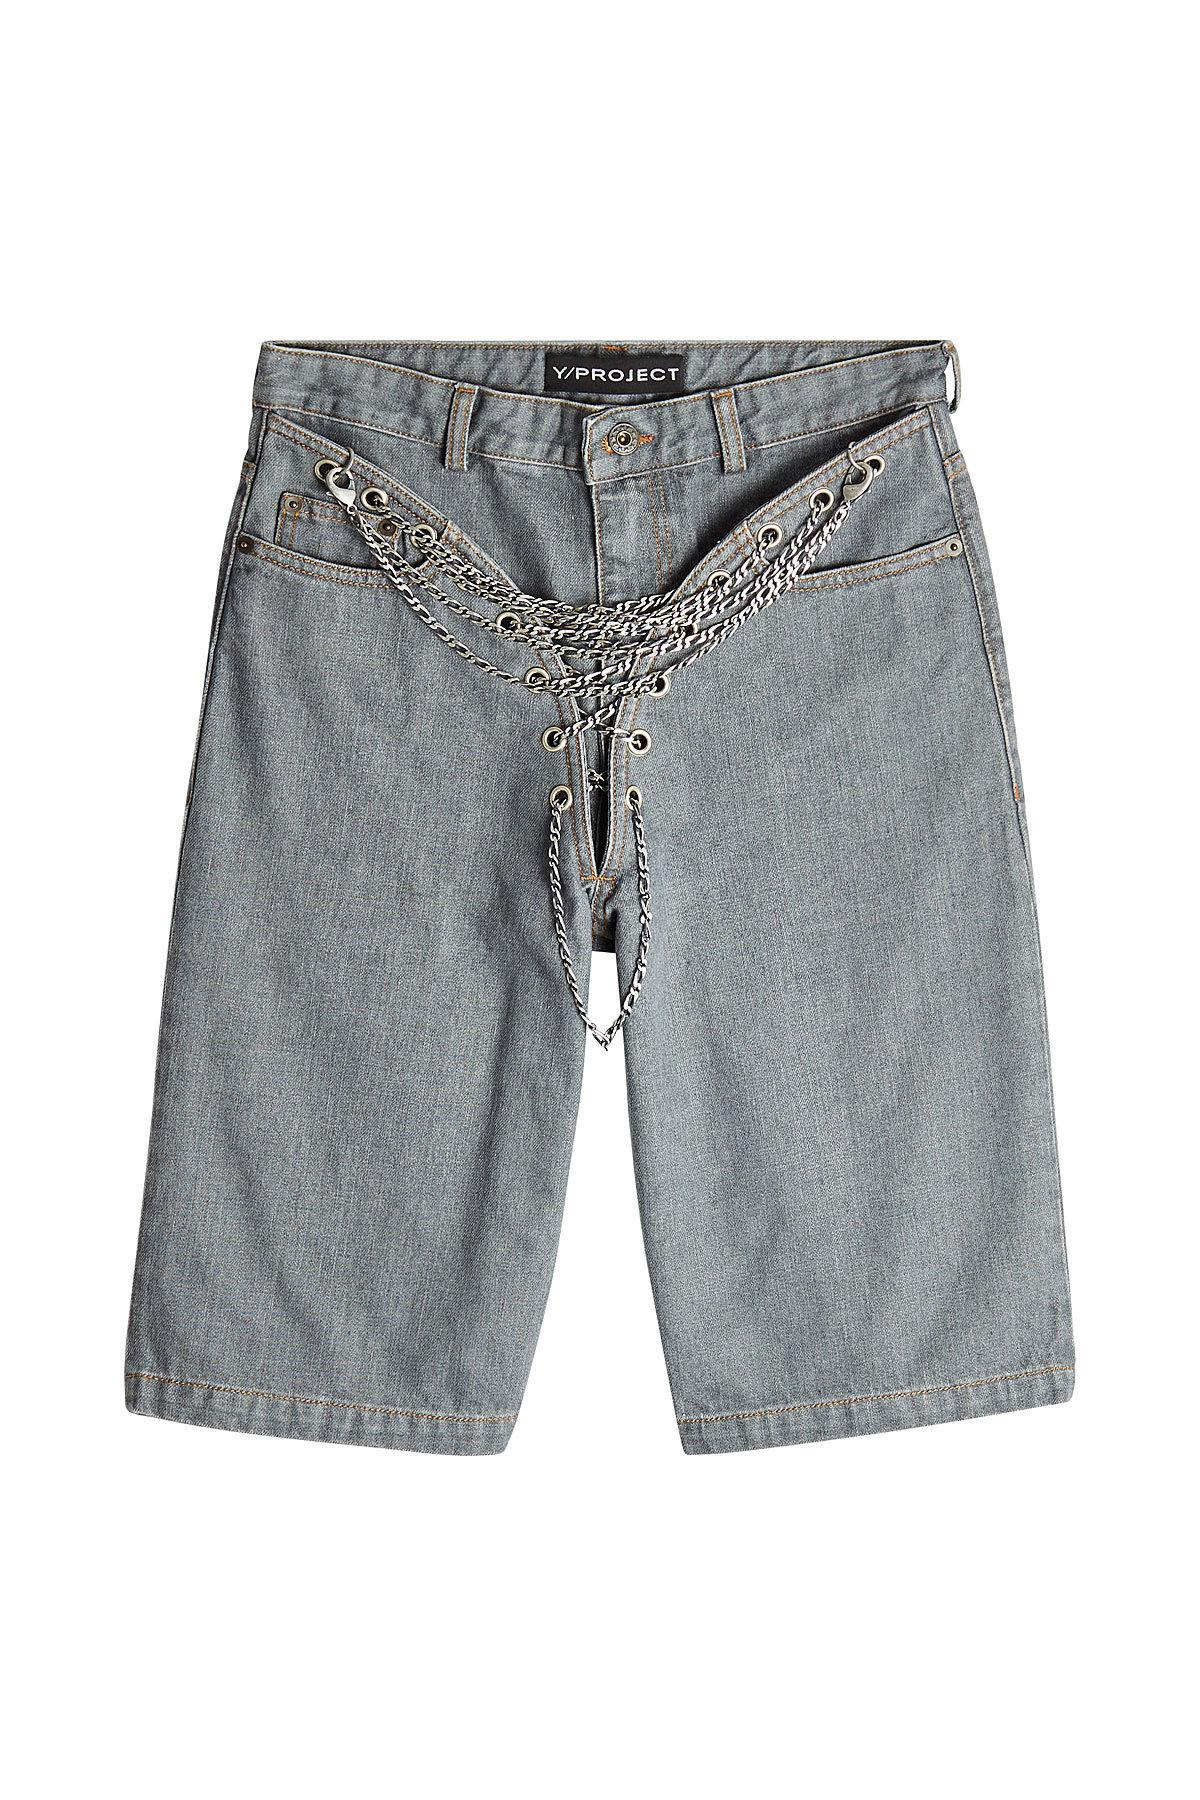 Looking For Sale Sale Online chain detail denim short - Grey Y / Project Cheap Sale Websites Outlet Best Place For Sale Online 6ZRTVyai